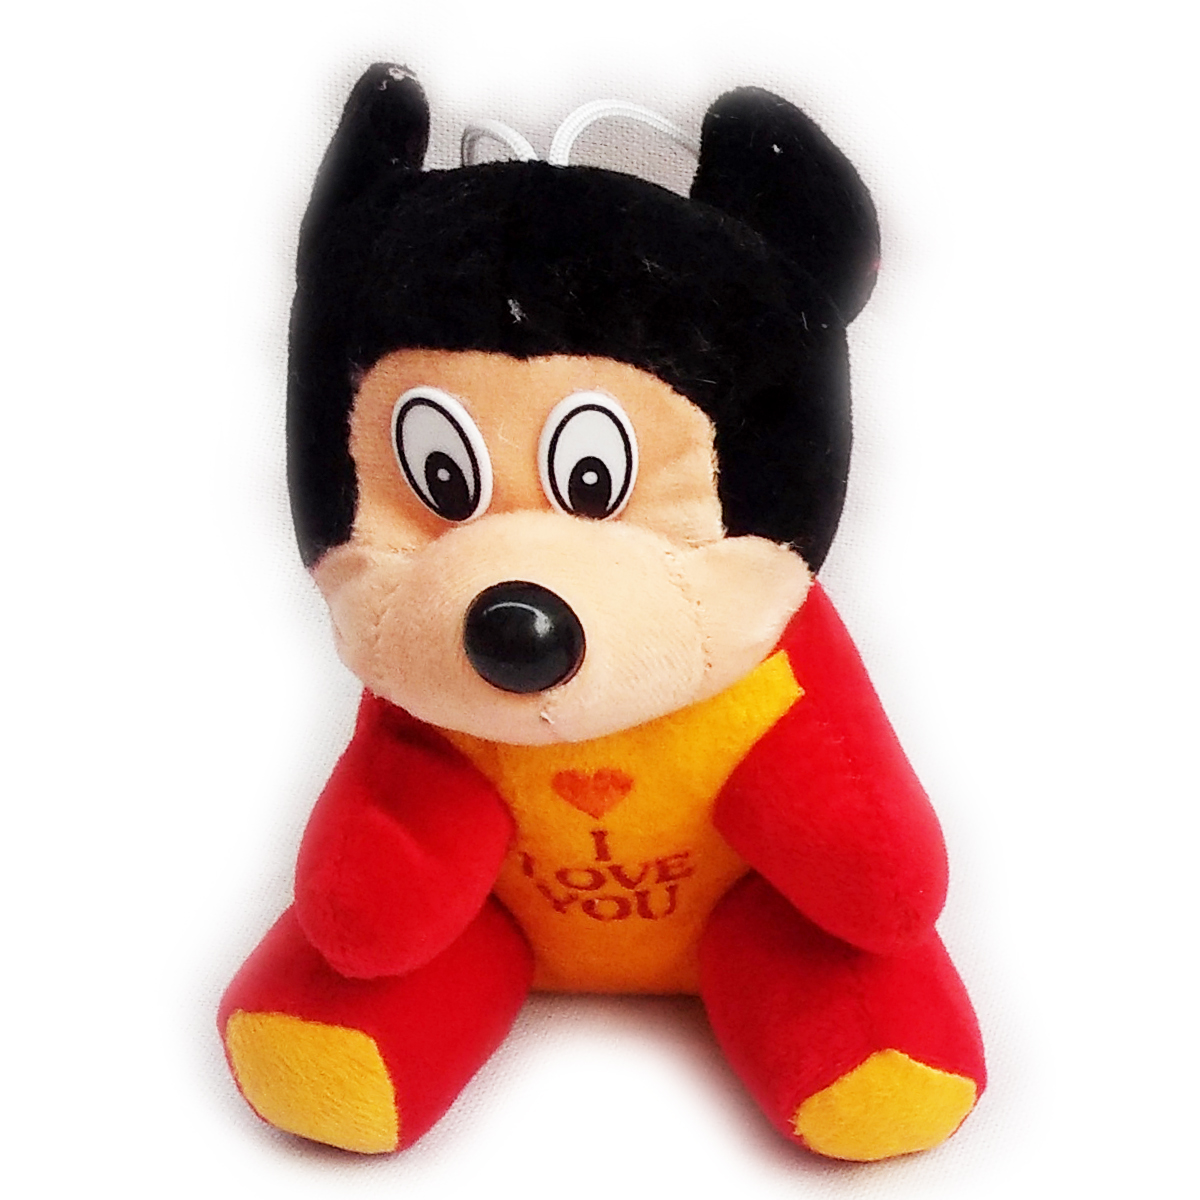 e5682e26c4a5 Disney Micky Mouse kids favourite character Red Small Soft Toy Gift (17cm)